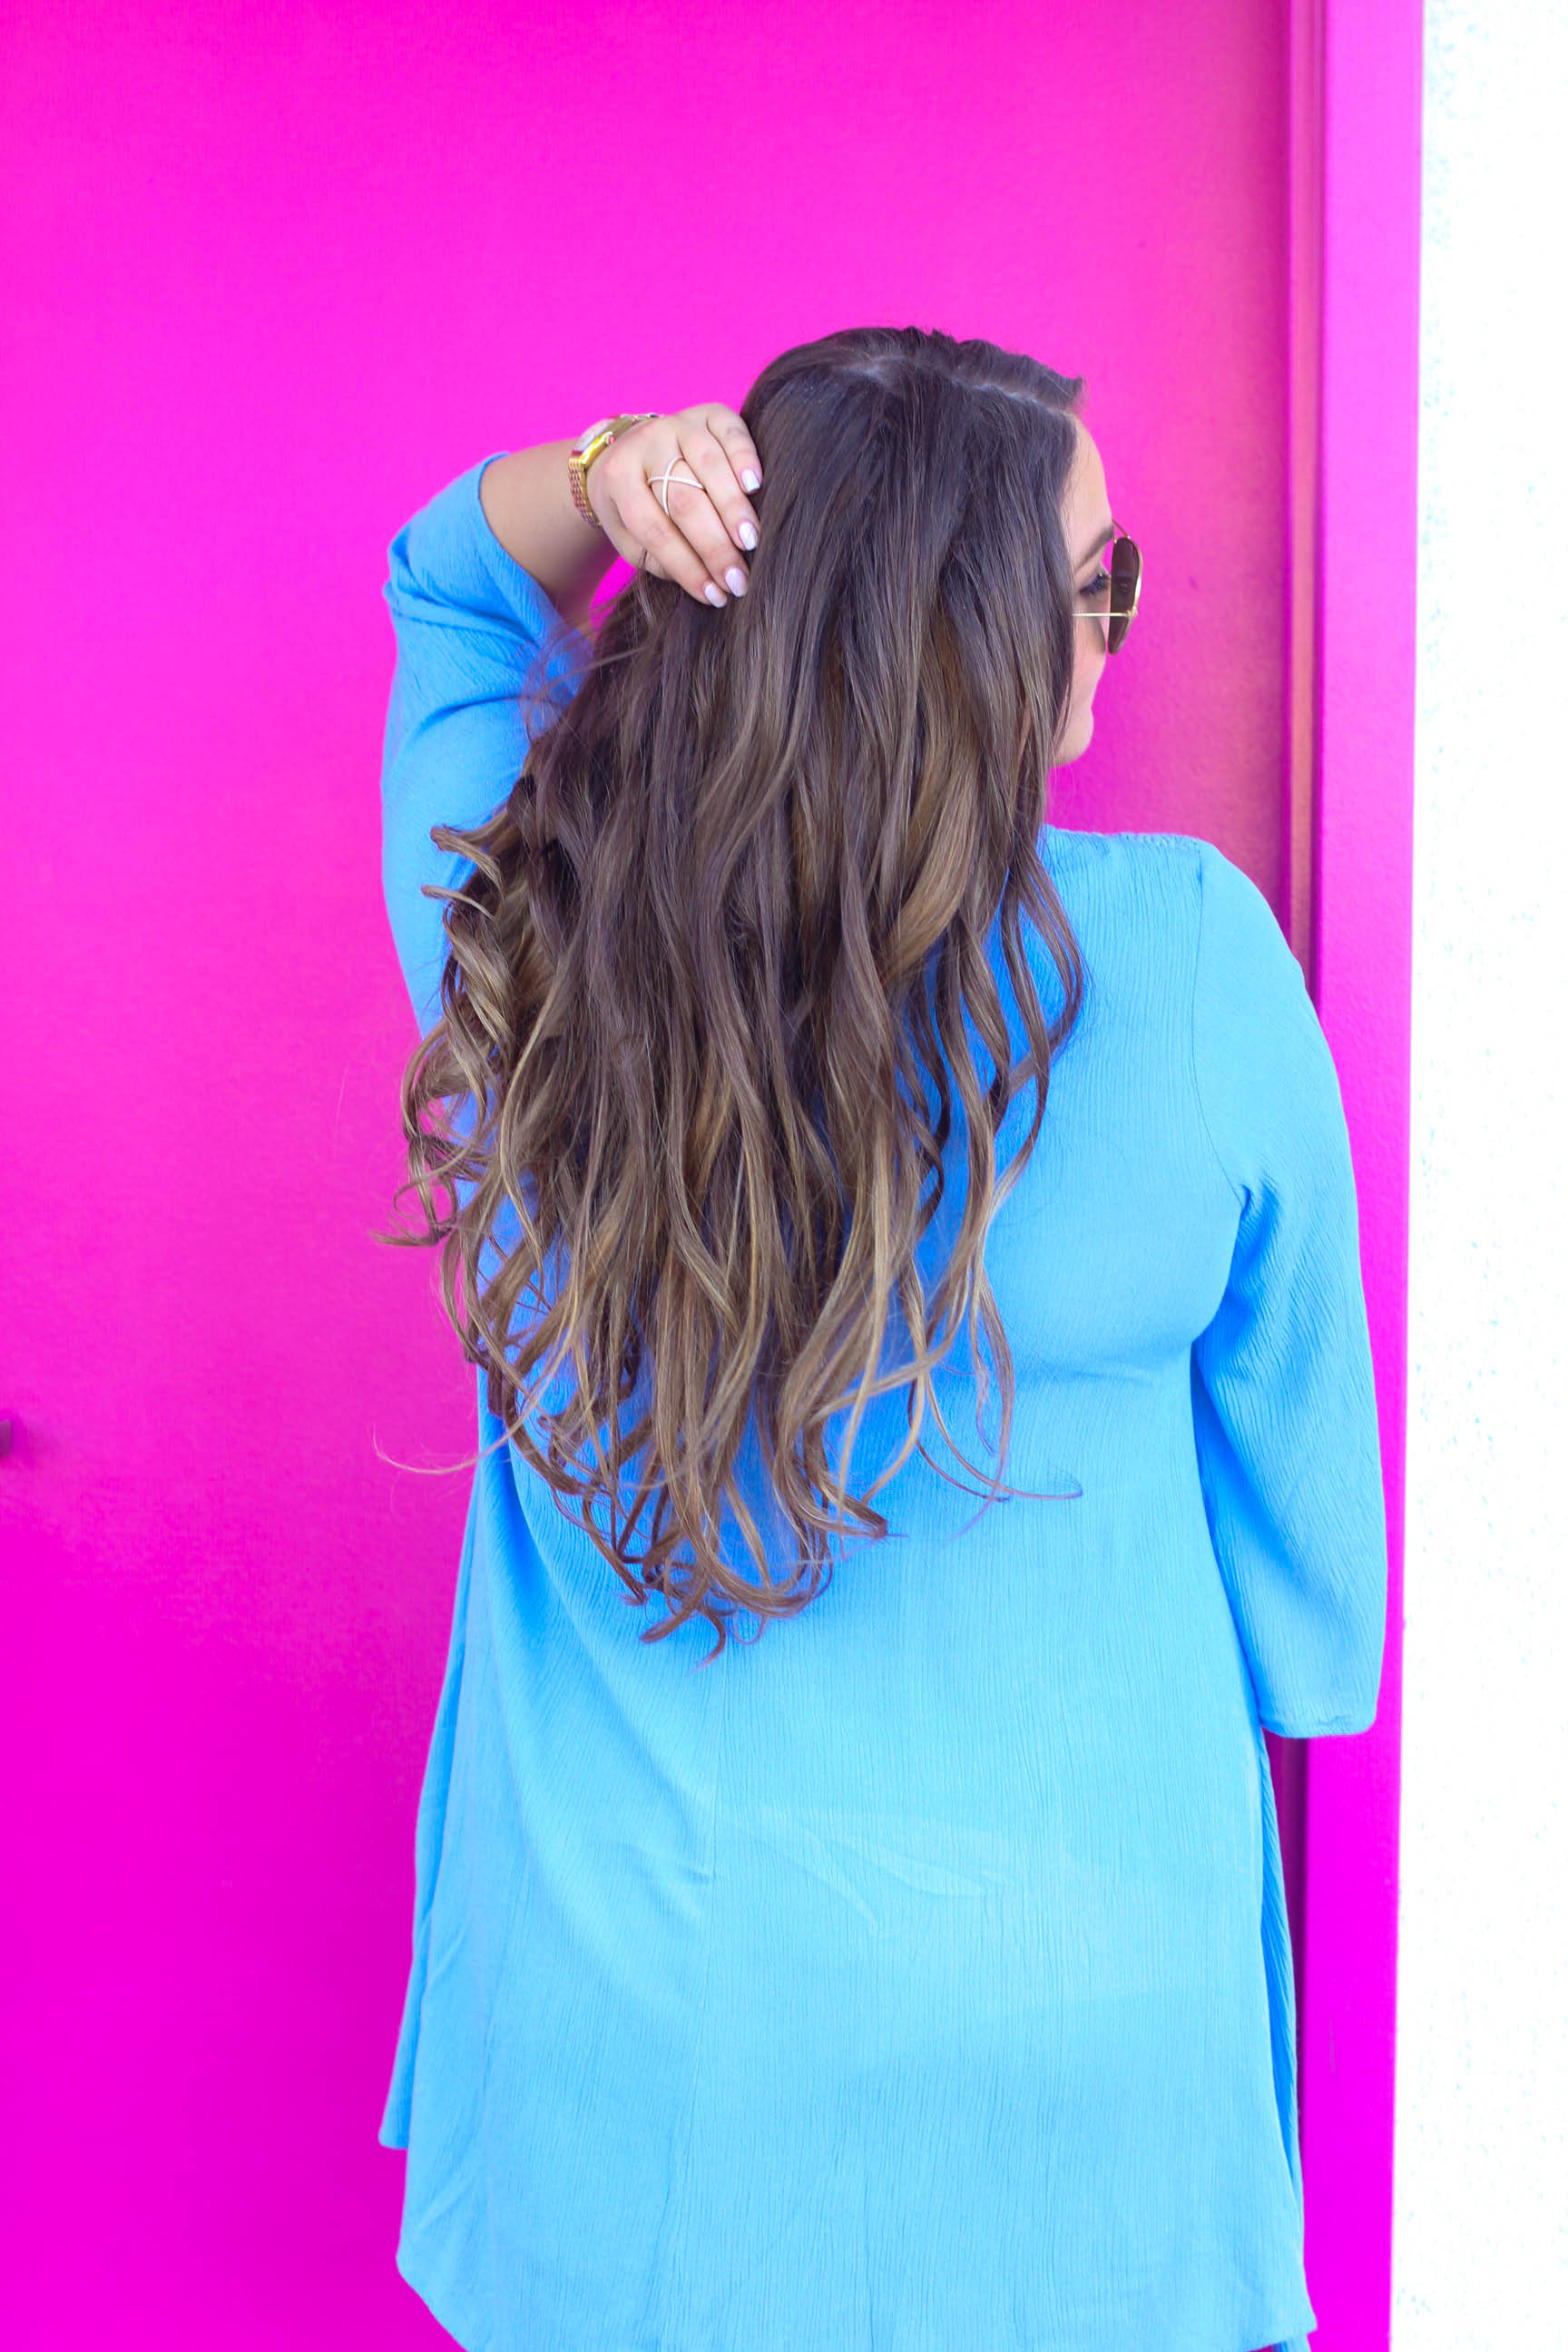 hair extensions, irresistible me hair extensions, irresistible me hair, human hair extensions, clip in extensions, beauty blogger, hair style, hair wand, hair straightener, curling iron, hair trends, hair style, style blogger, beauty goals, hair goals, hairdresser, long hair dont care, how to use clip in hair extensions, how to wear hair extensions, bloglovin, la blogger,